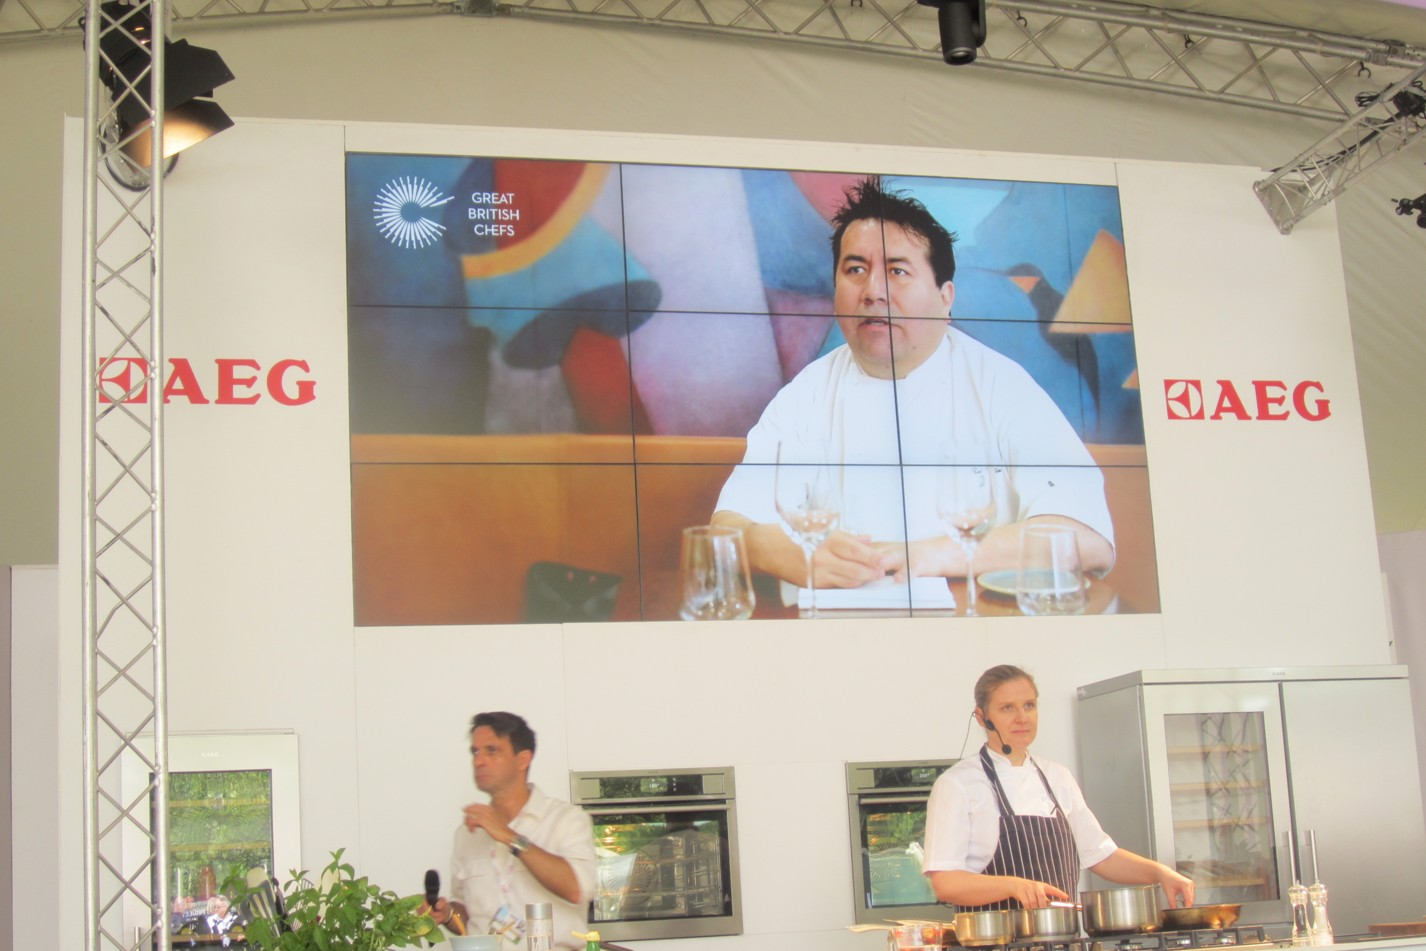 Our chef videos